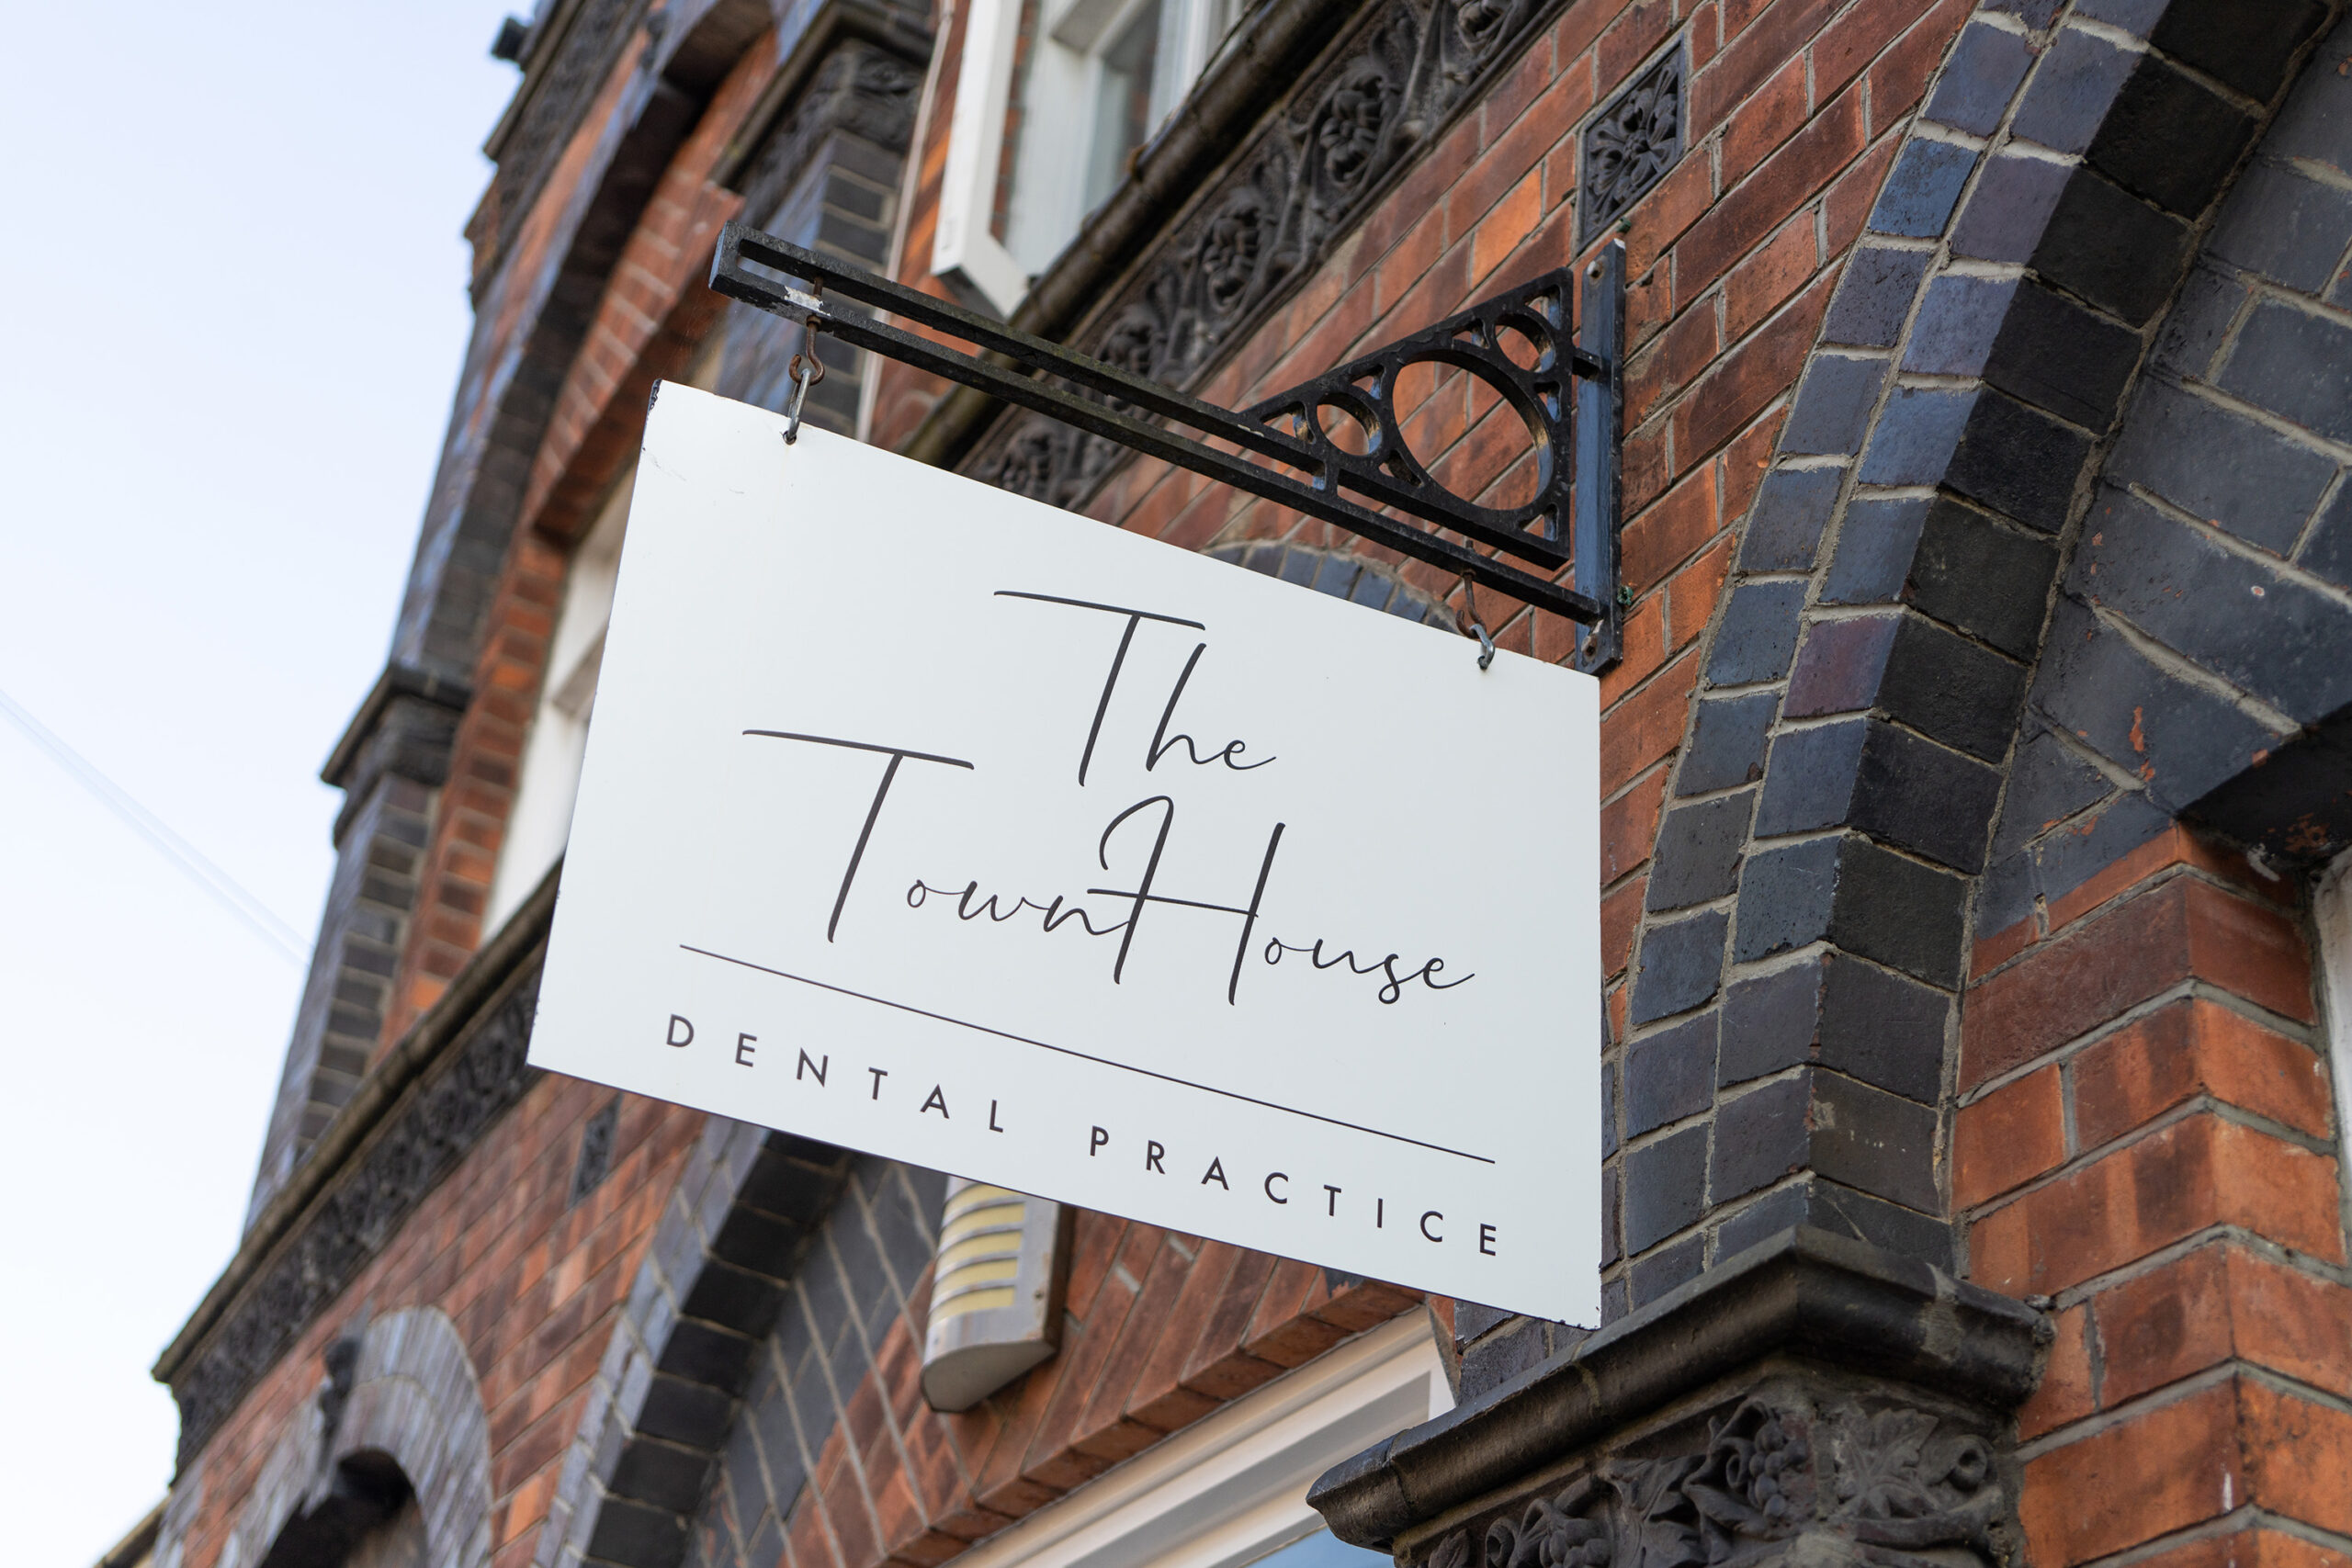 The Town House Dental Practice